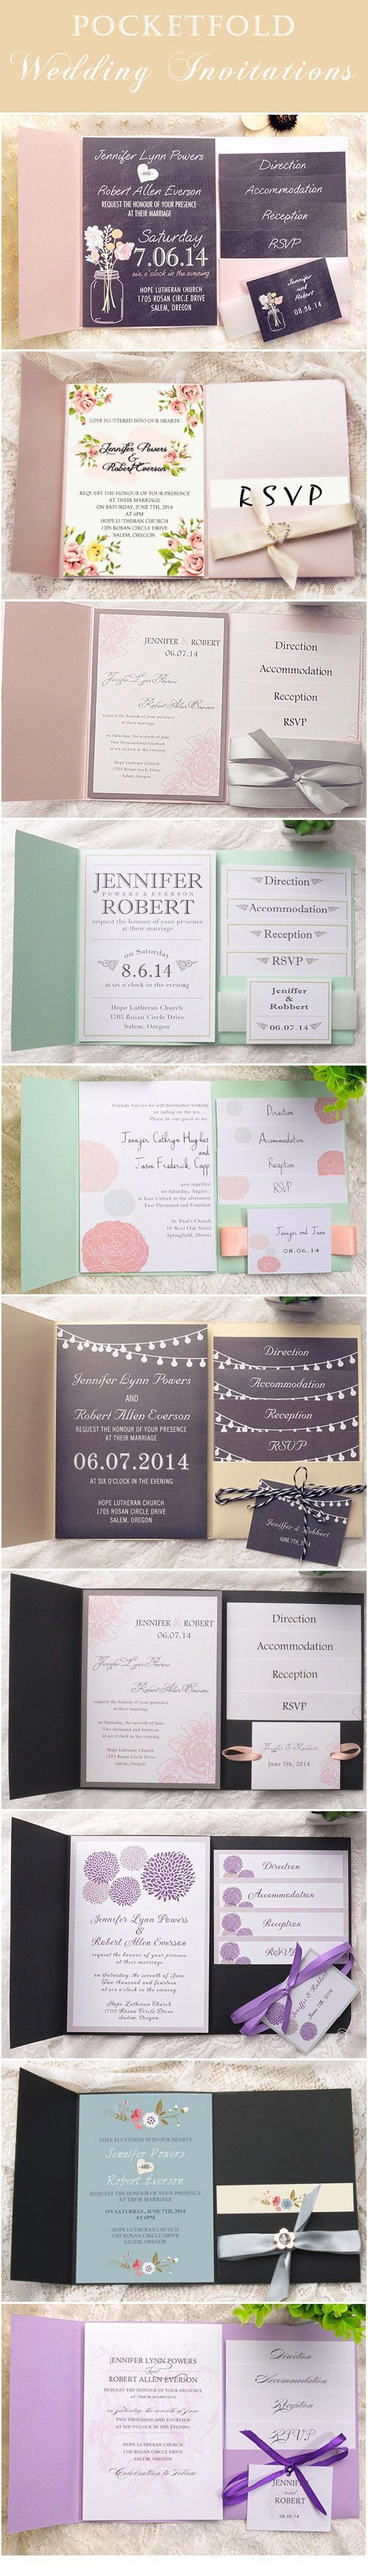 elegant pocket wedding invitations with free response